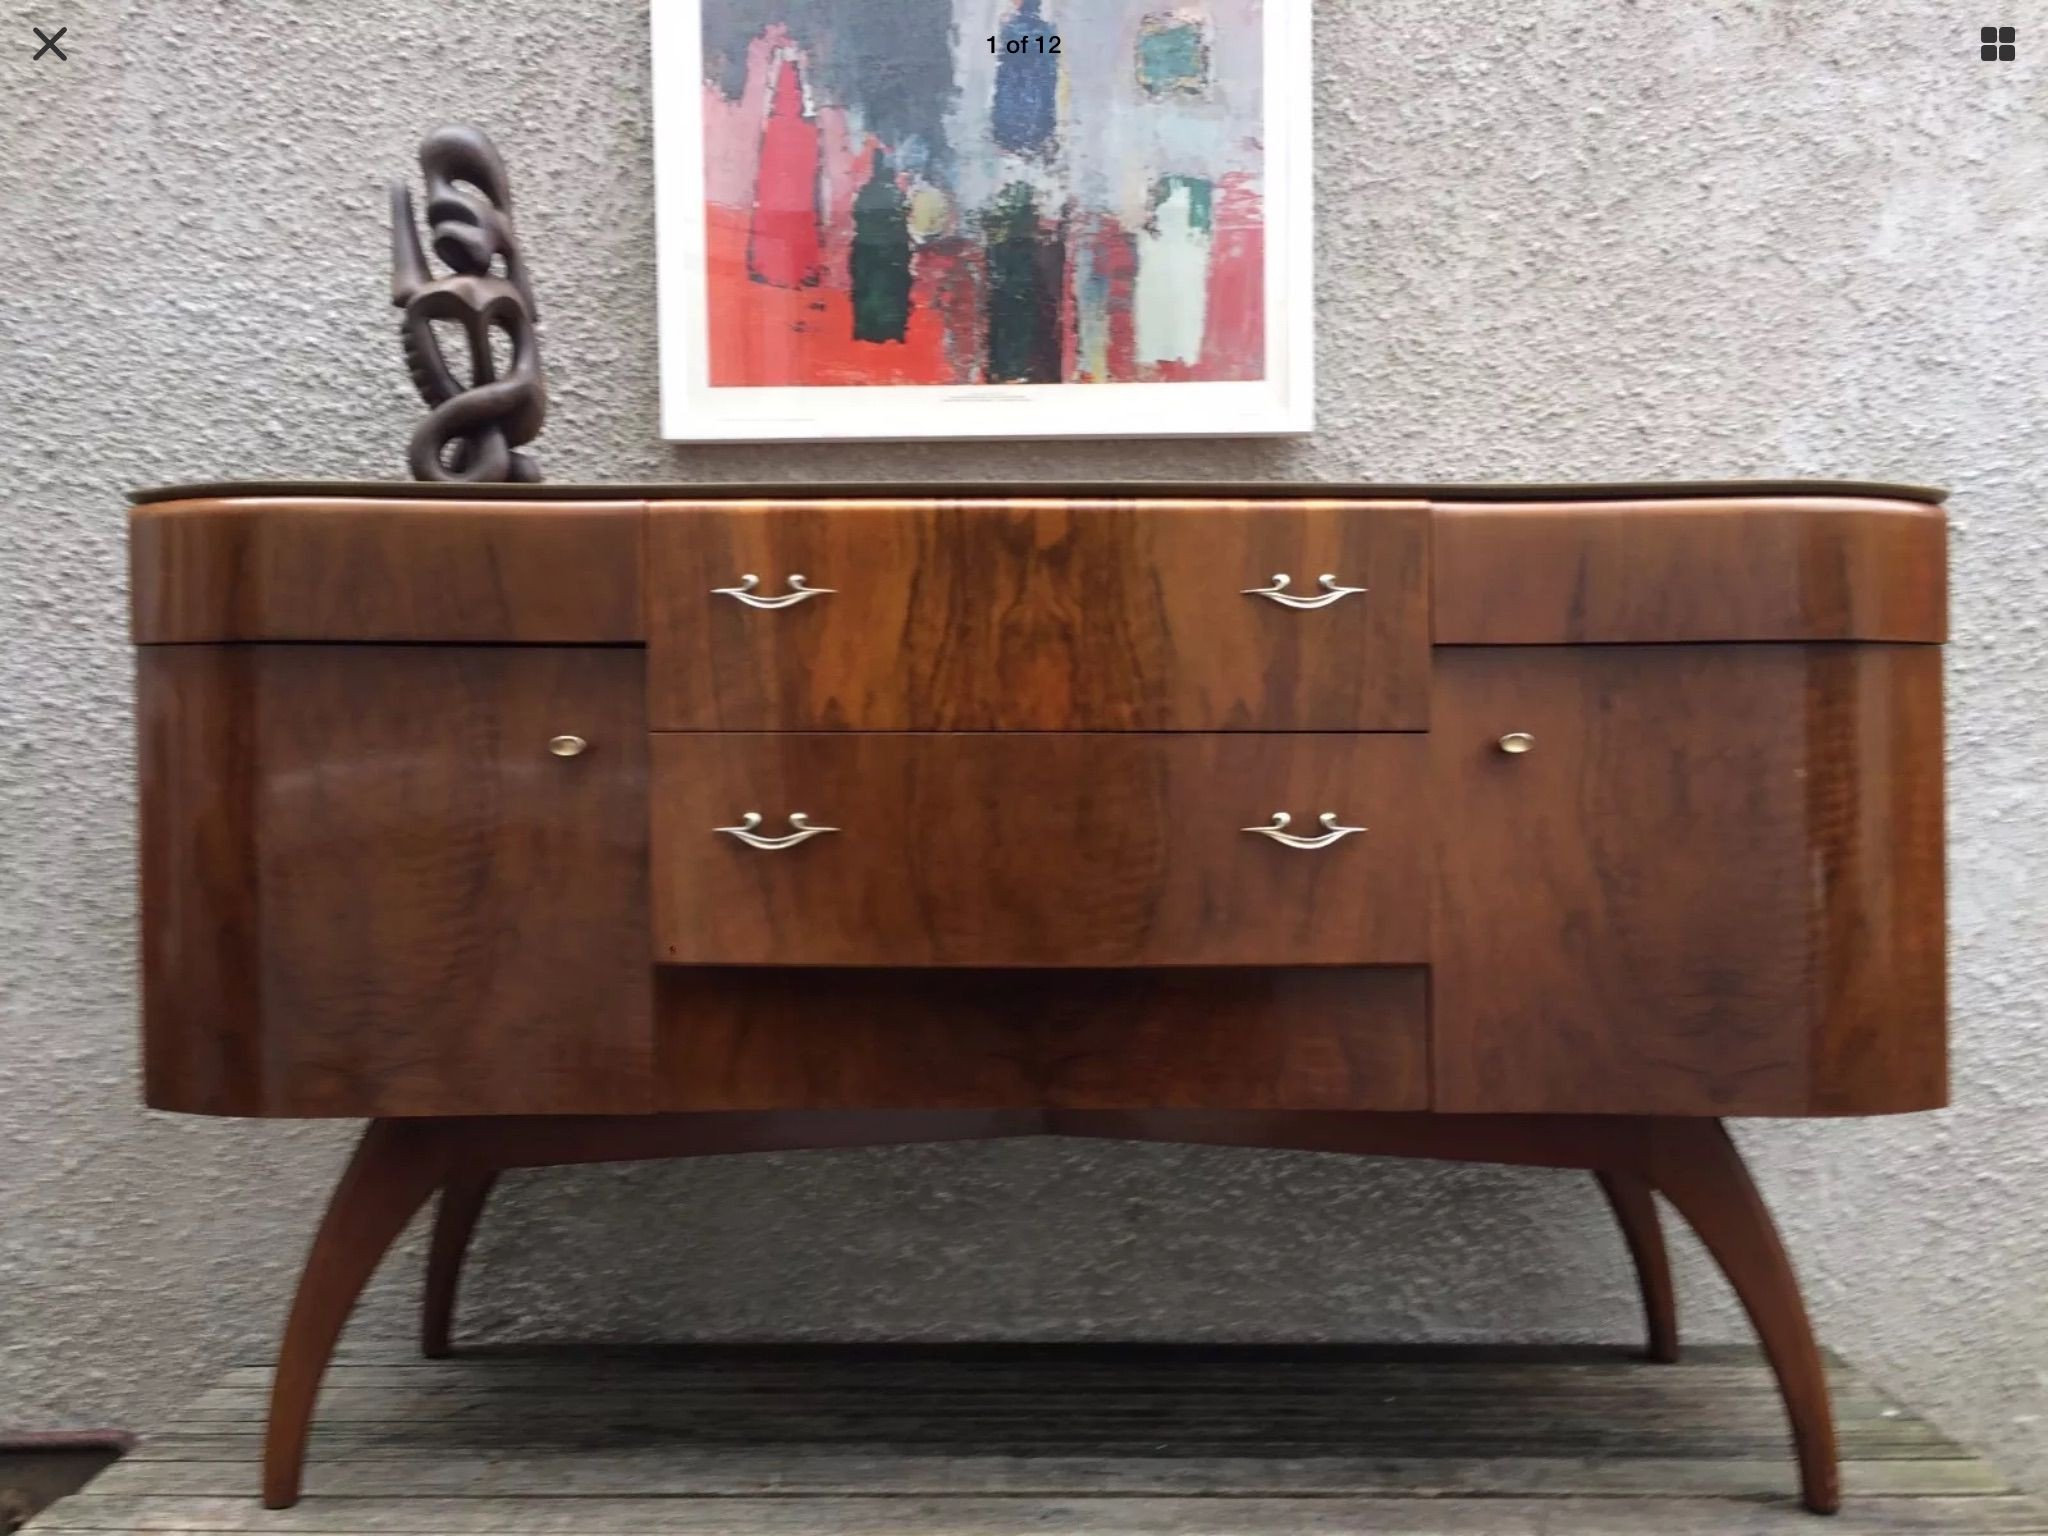 1940s Bedroom Furniture Styles Inspirational Beautility Sideboard 1940s